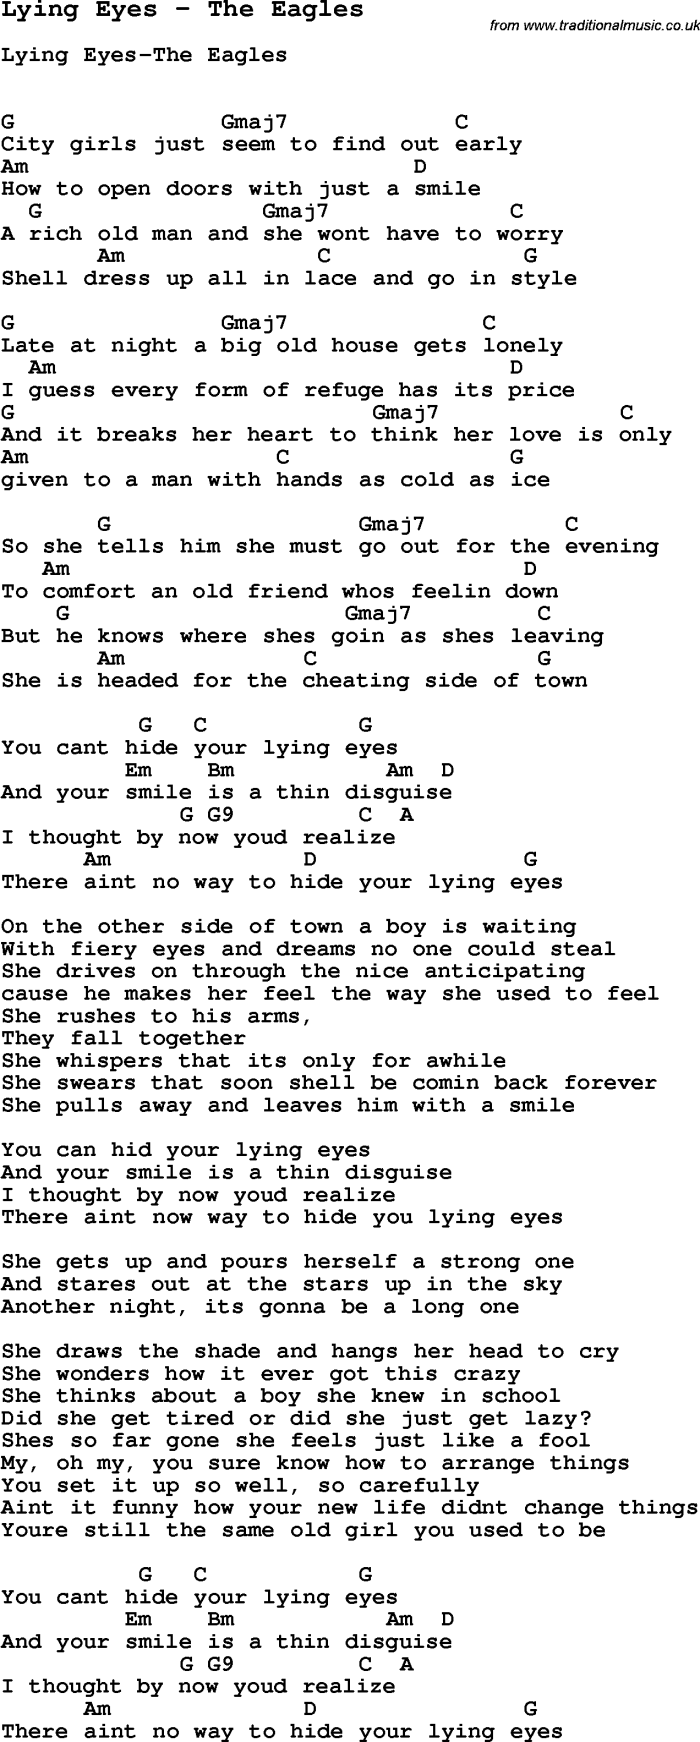 lying_eyes-the_eagles